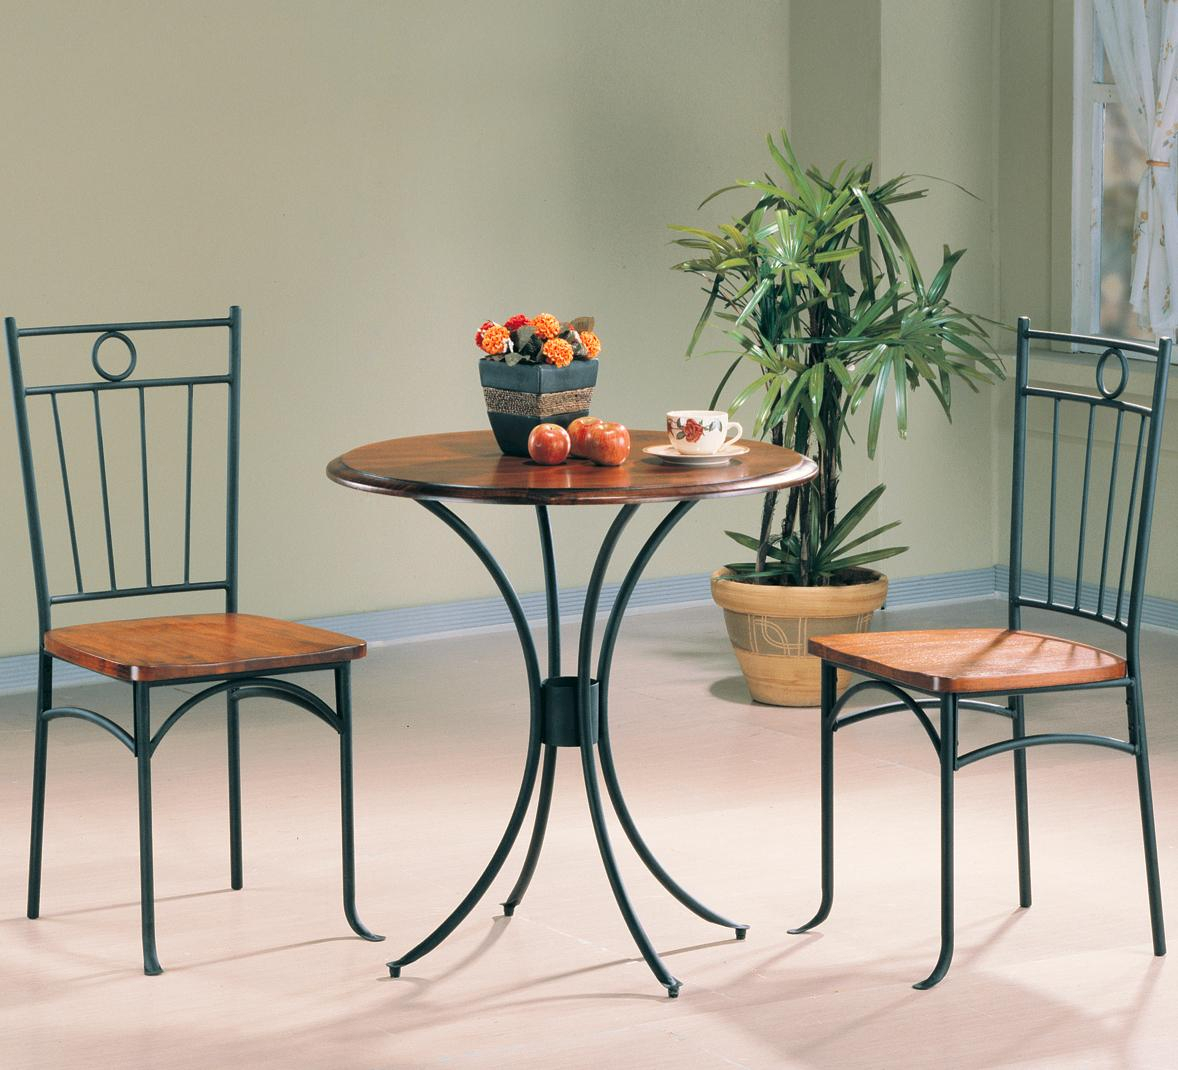 Tamiami 3 Piece Bistro Dining Setcoaster At Value City Furniture Intended For Most Current 3 Piece Dining Sets (View 14 of 20)